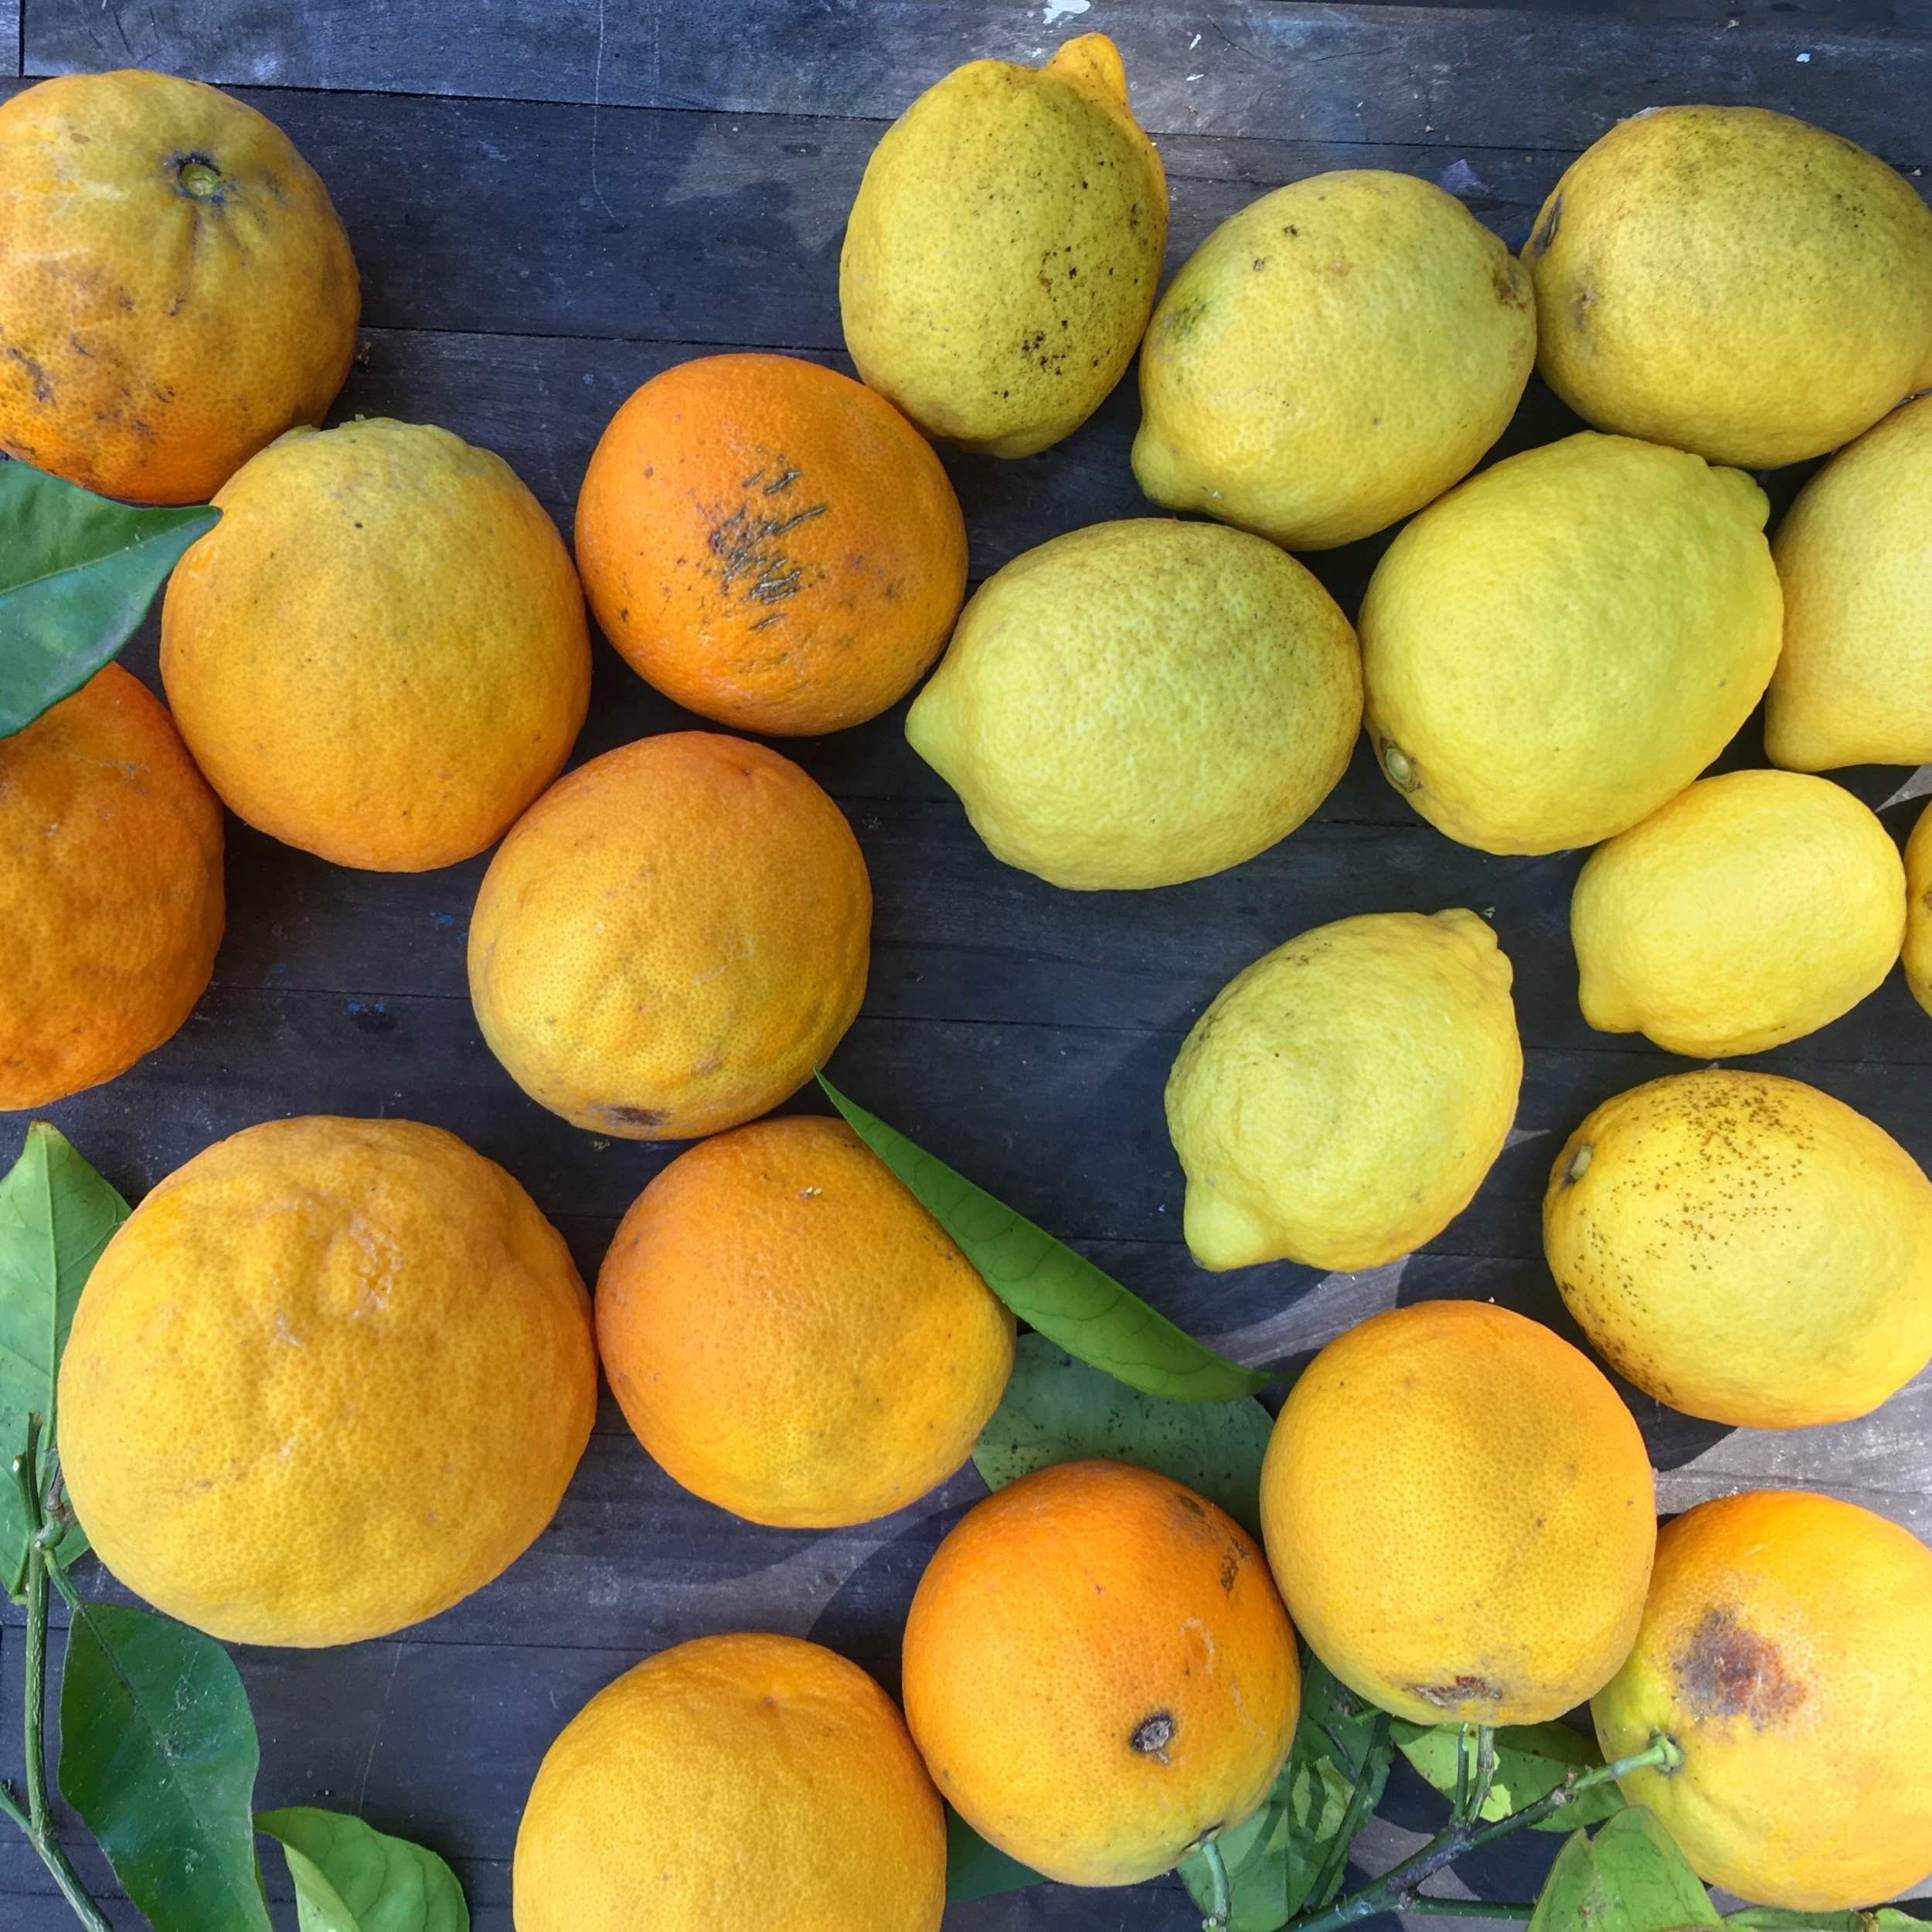 Ugly but delicious oranges and lemons picked straight from the tree in our backyard!